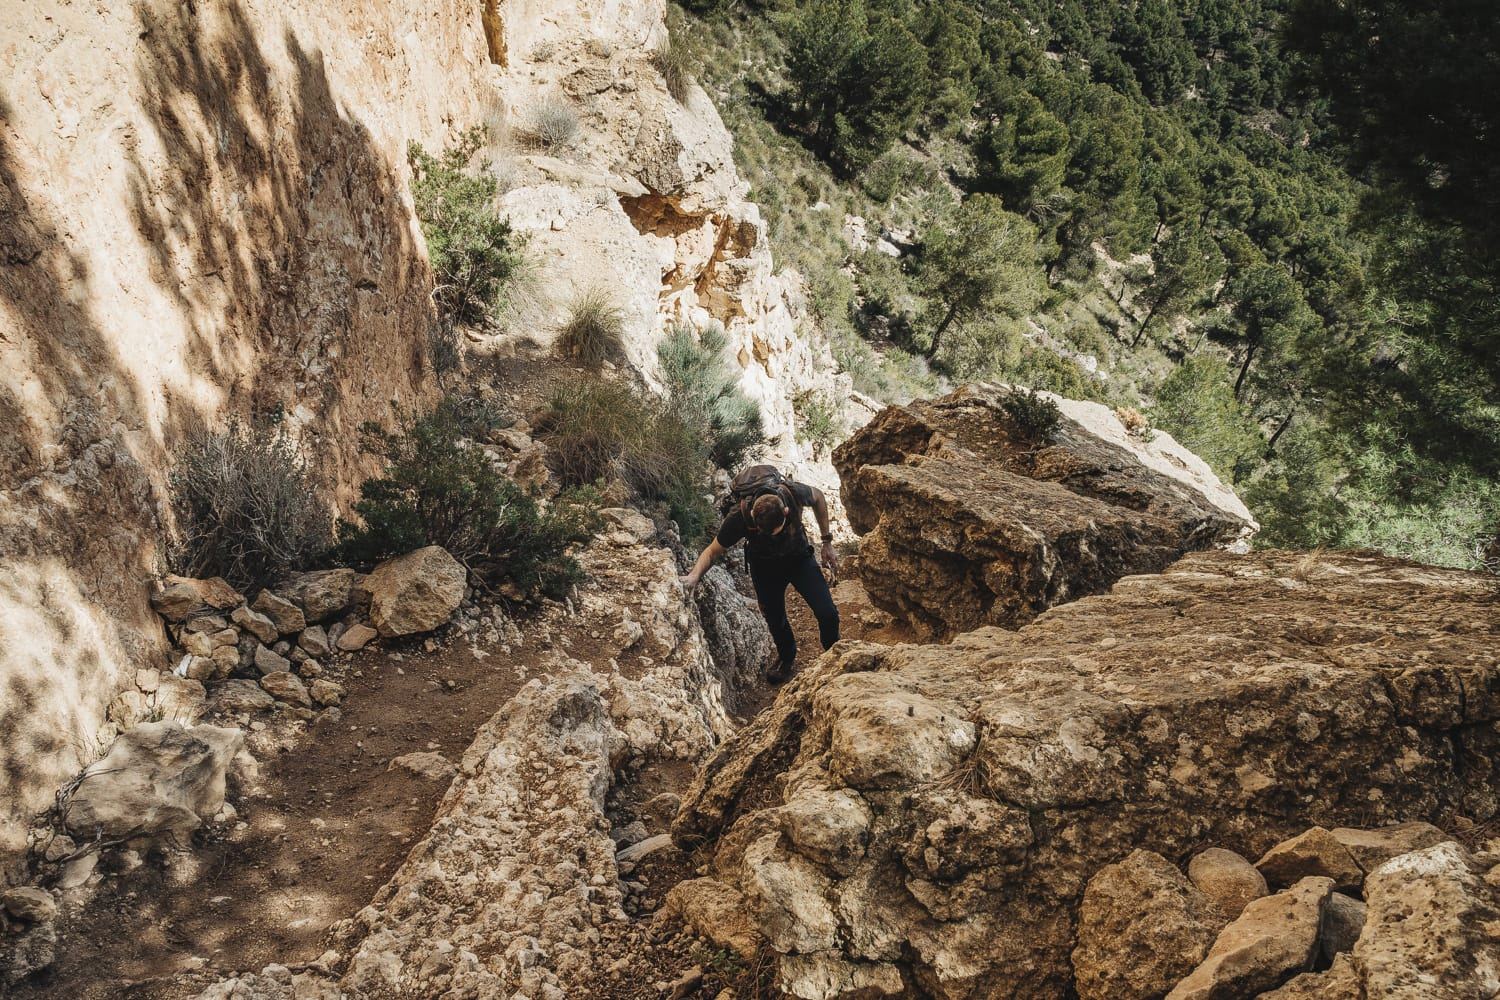 Scrambling on a hiking route in Spain